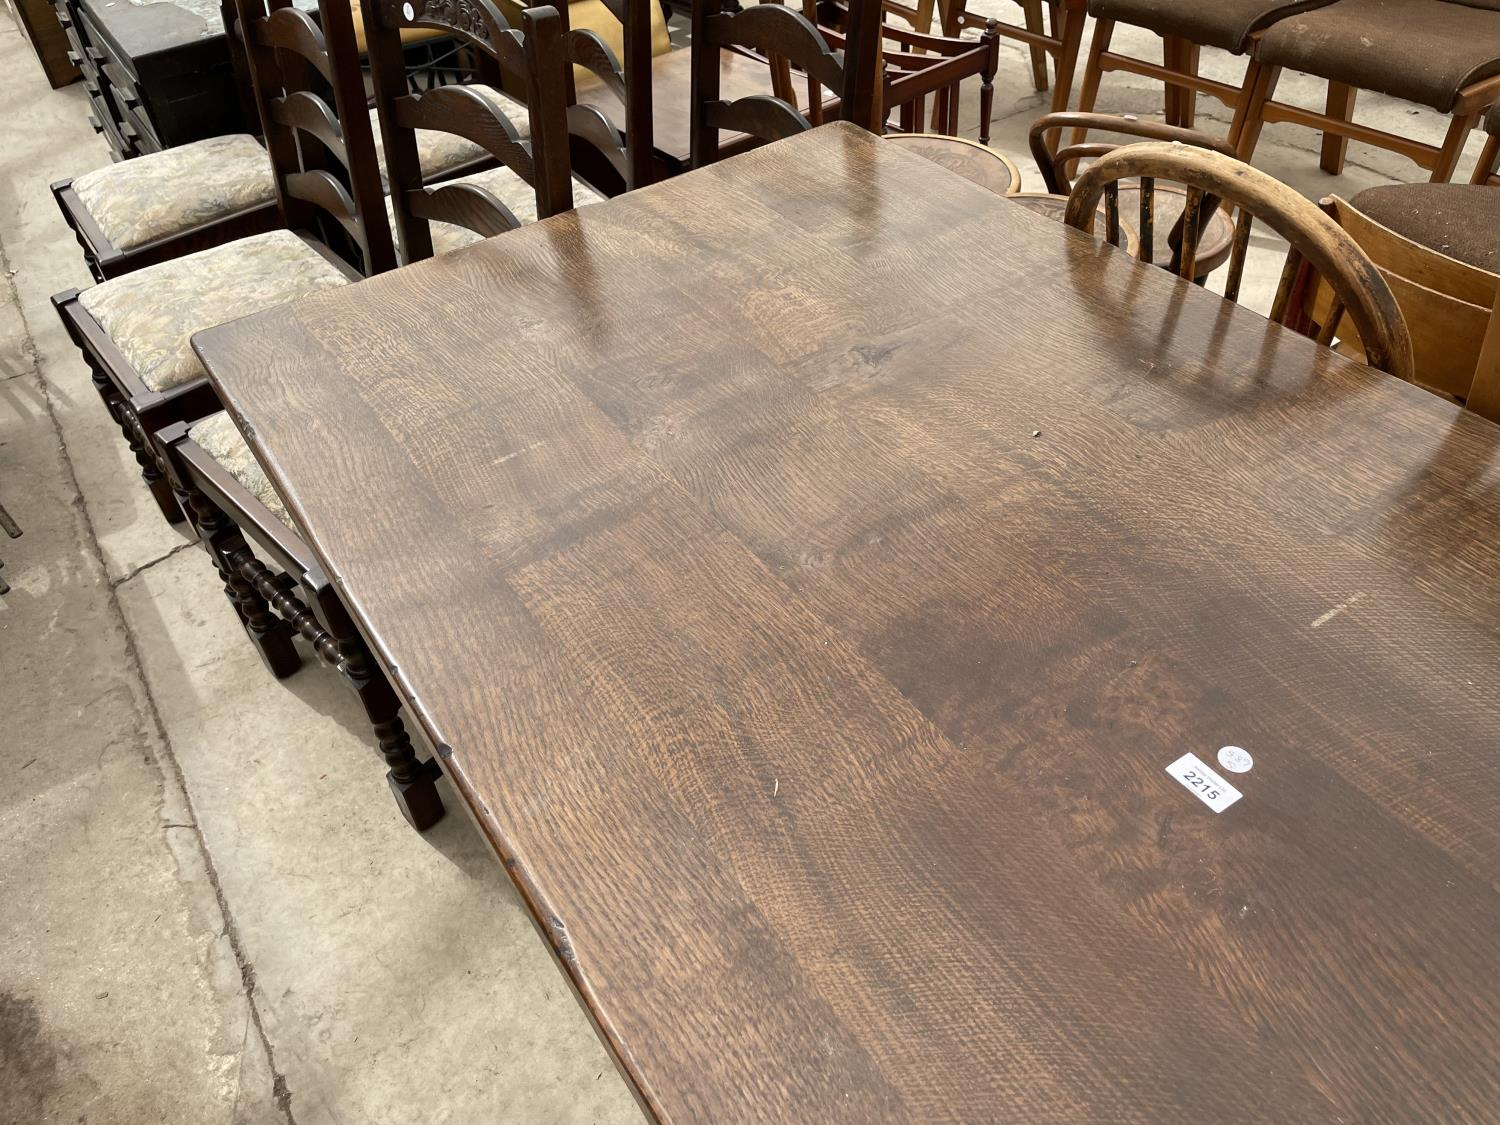 """A GEORGIAN STYLE OAK REFECTORY DINING TABLE ON TURNED LEGS, 72X32"""" - Image 2 of 4"""